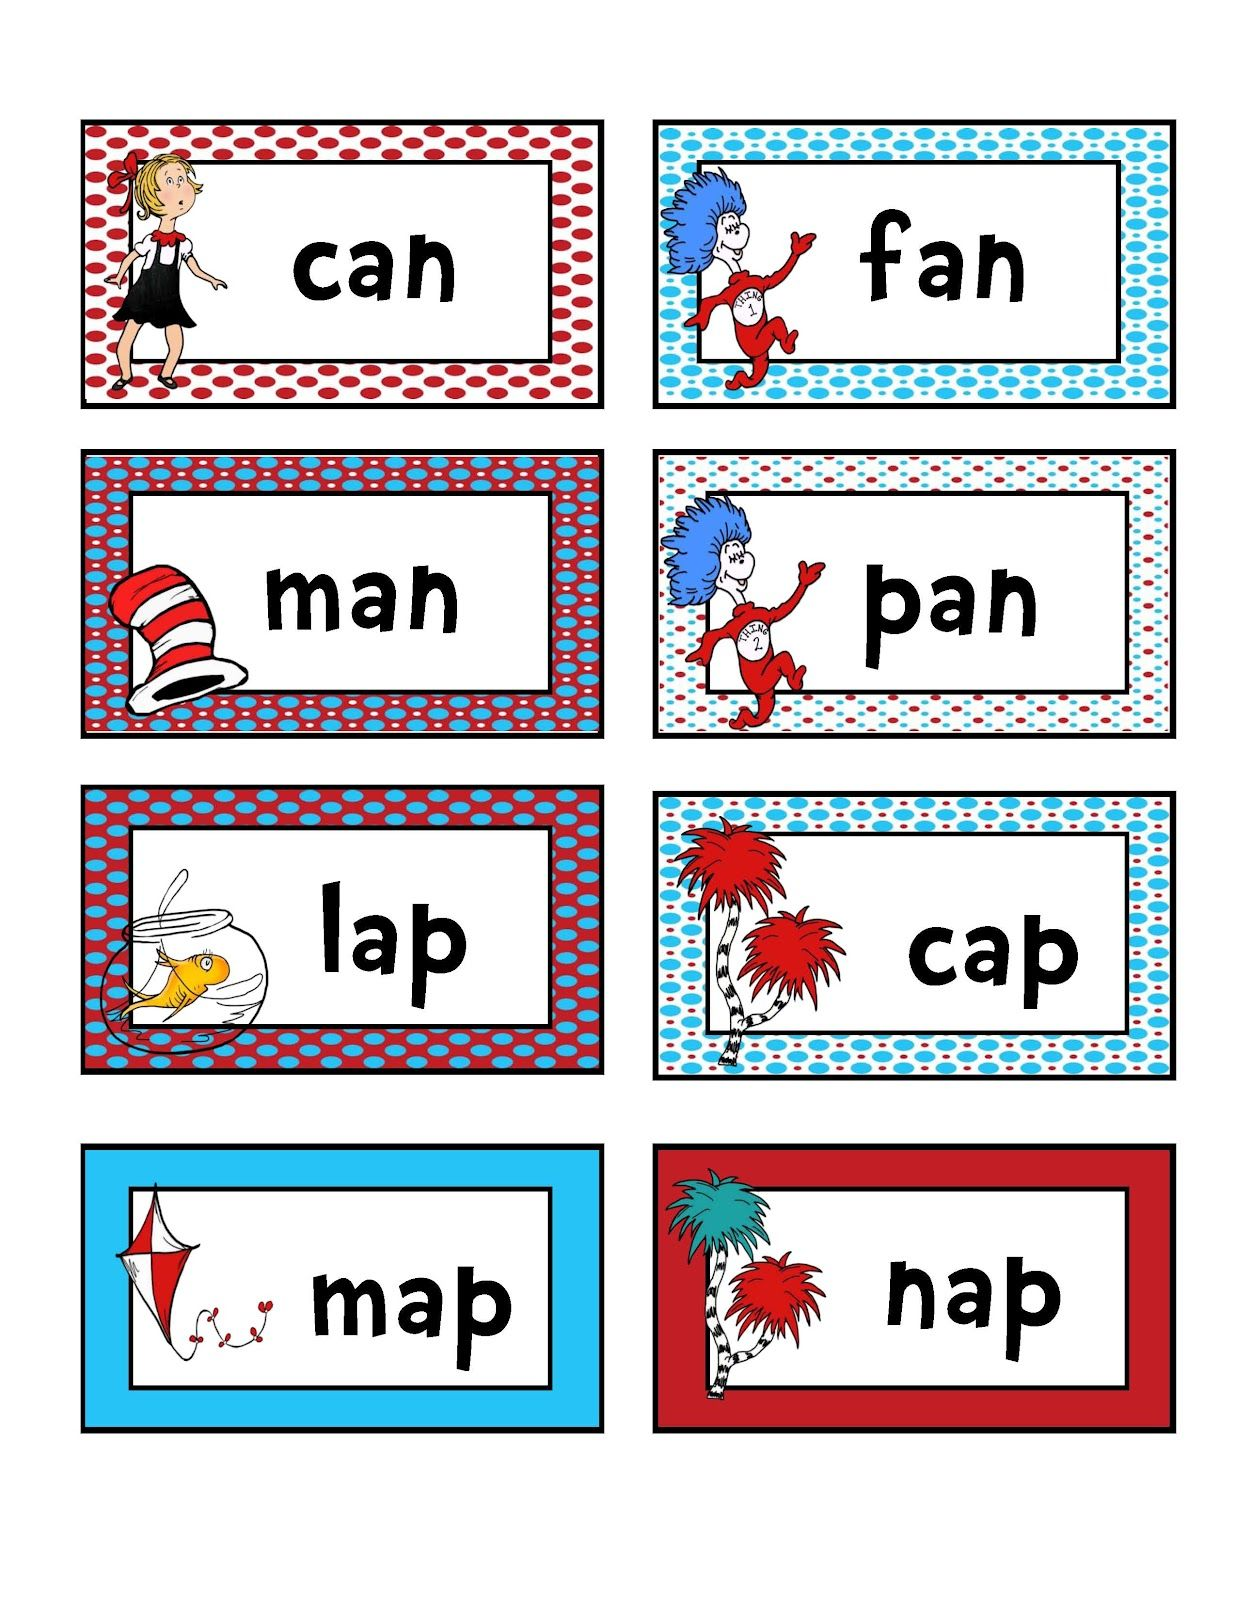 Worksheet Rhythming Words 17 best images about rhyming words on pinterest kindergarten worksheets activities for children and long vowels